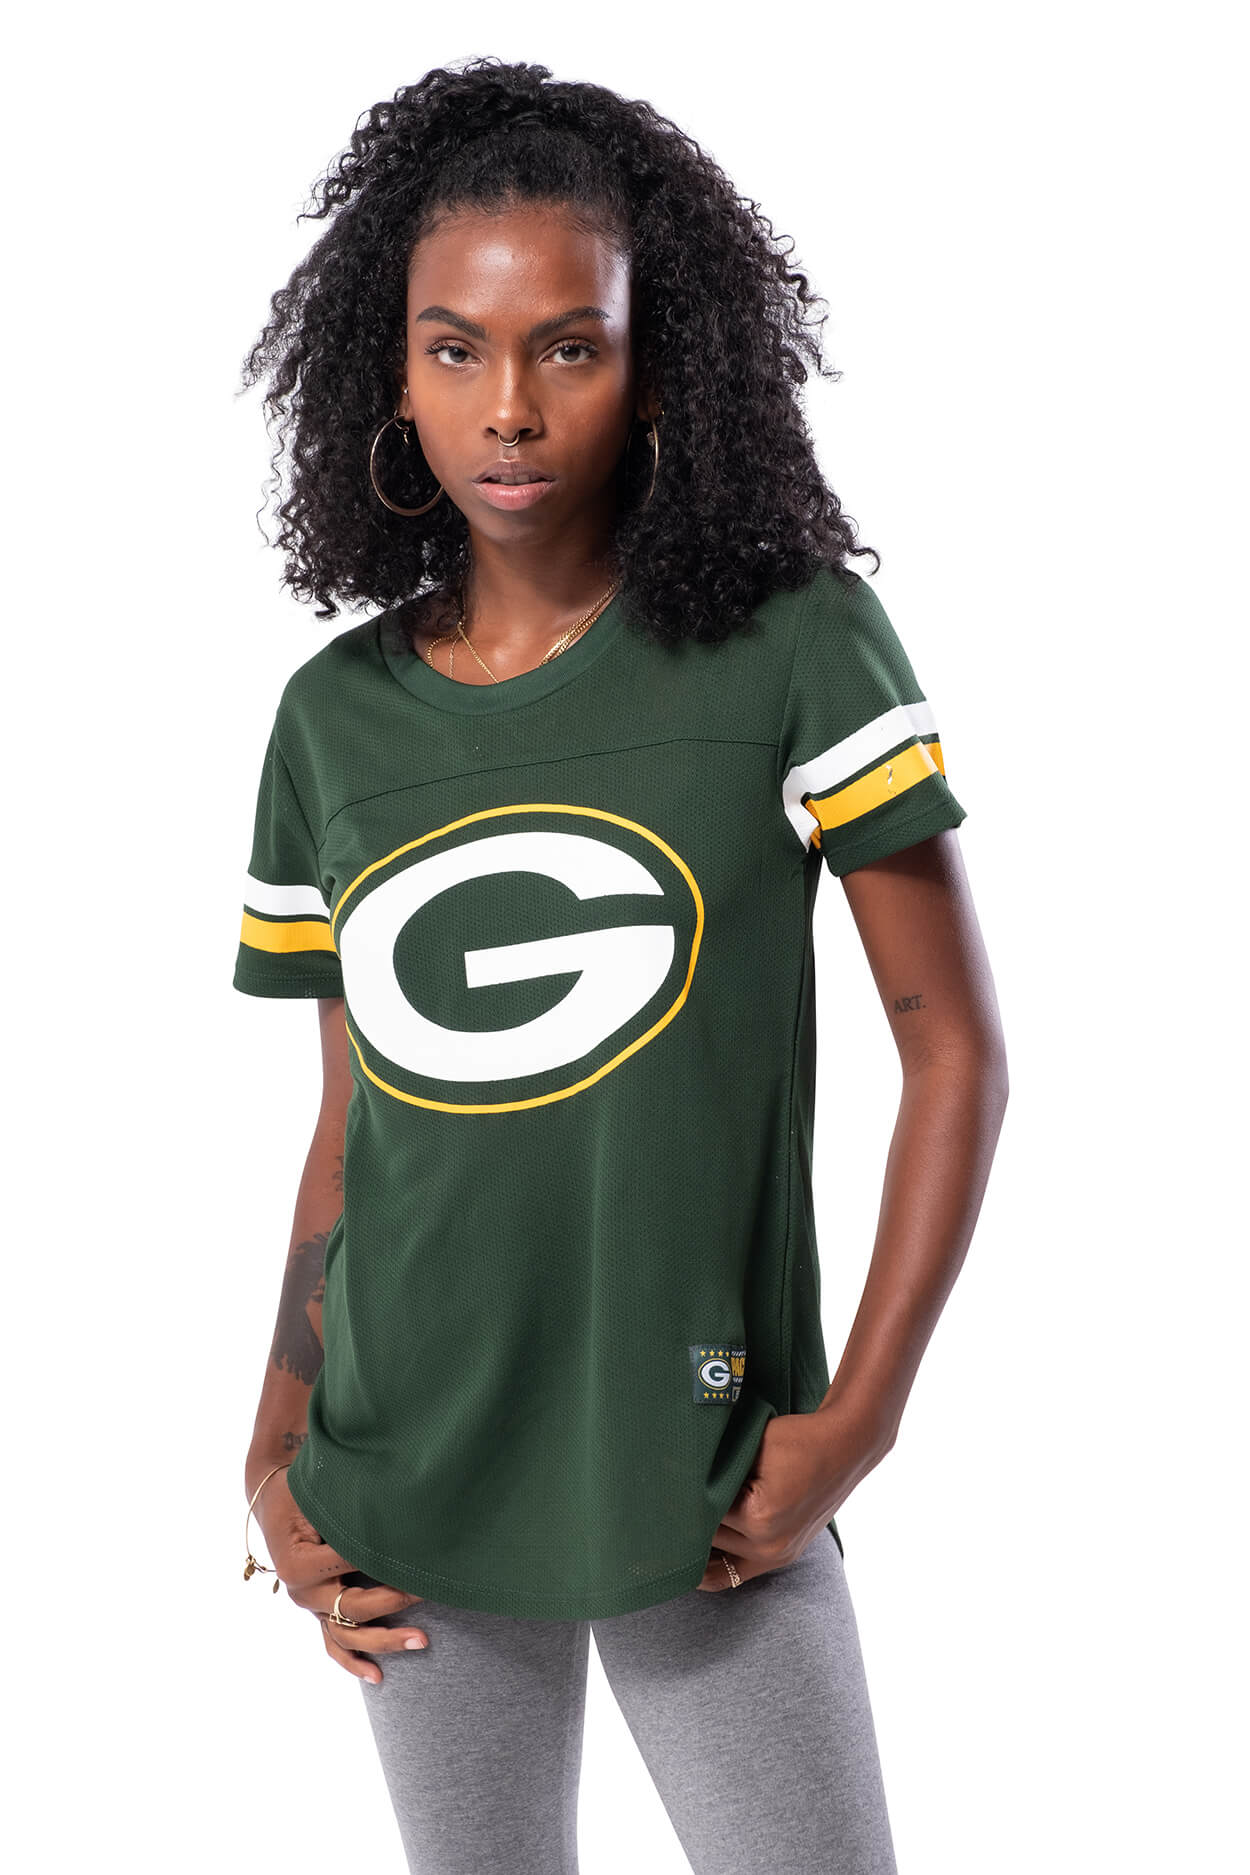 NFL Green Bay Packers Women's Varsity Stripe Tee|Green Bay Packers